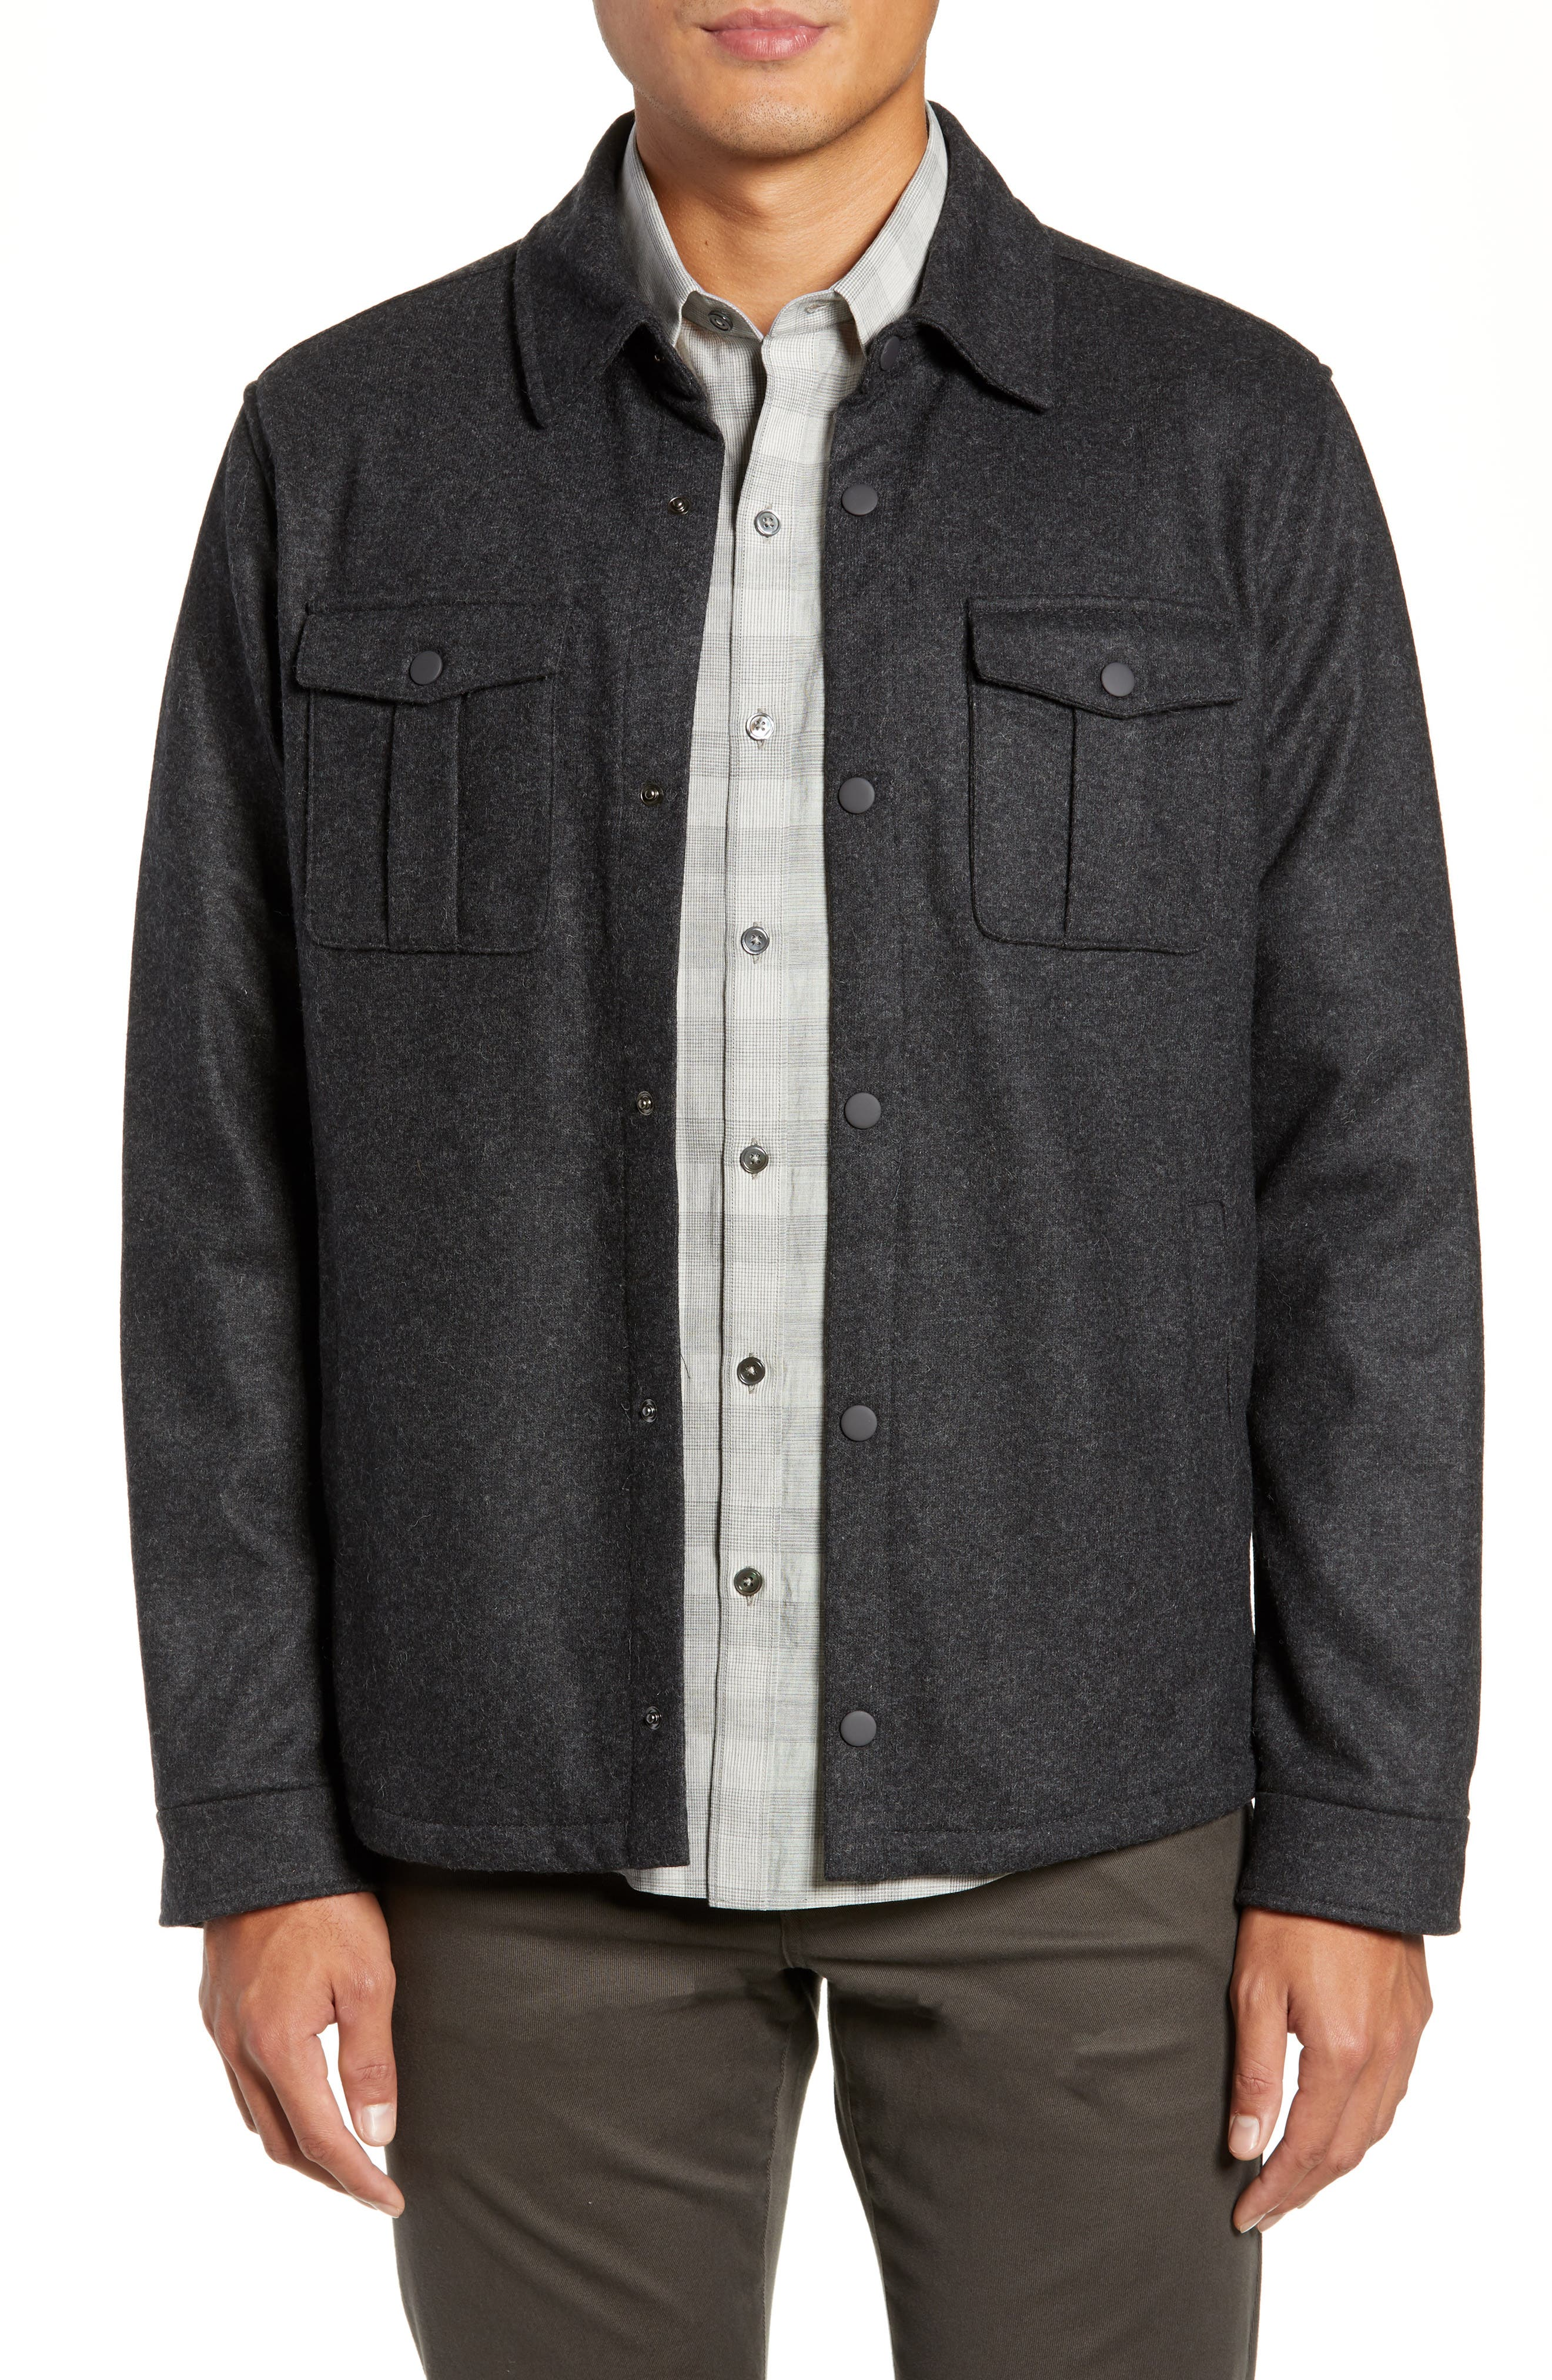 Seymour Regular Fit Wool Blend Shirt Jacket,                             Main thumbnail 1, color,                             DARK GREY